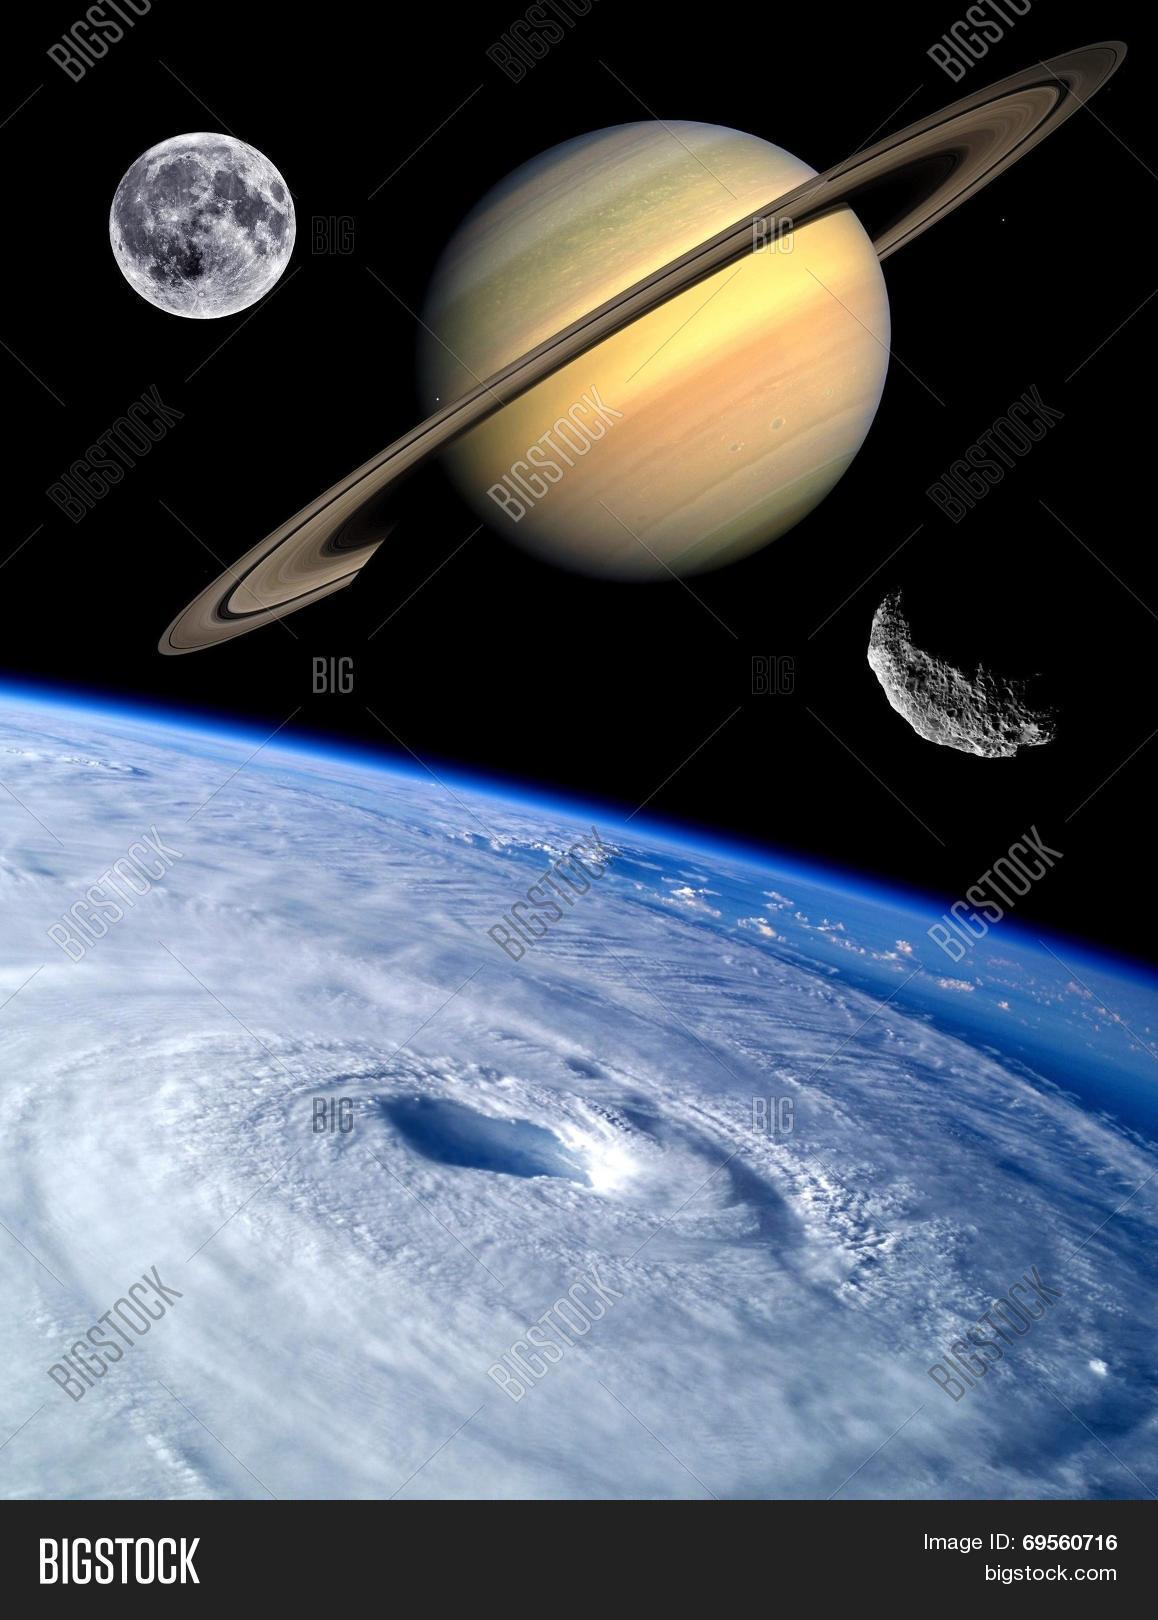 earth fantasy planets image photo free trial bigstock